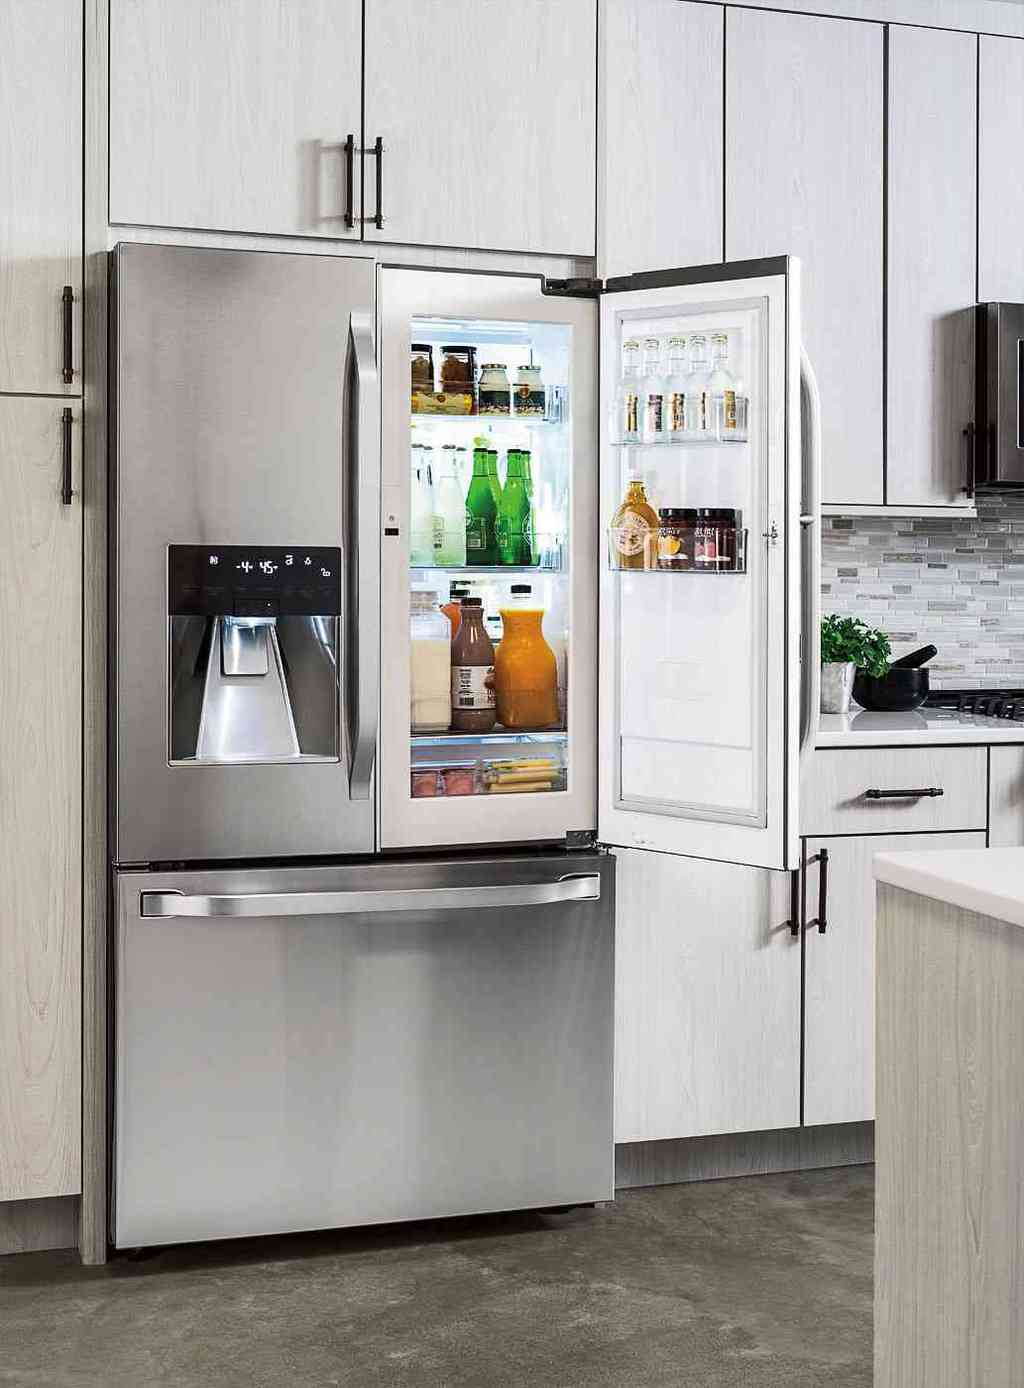 Green Your Appliances with LG Studio